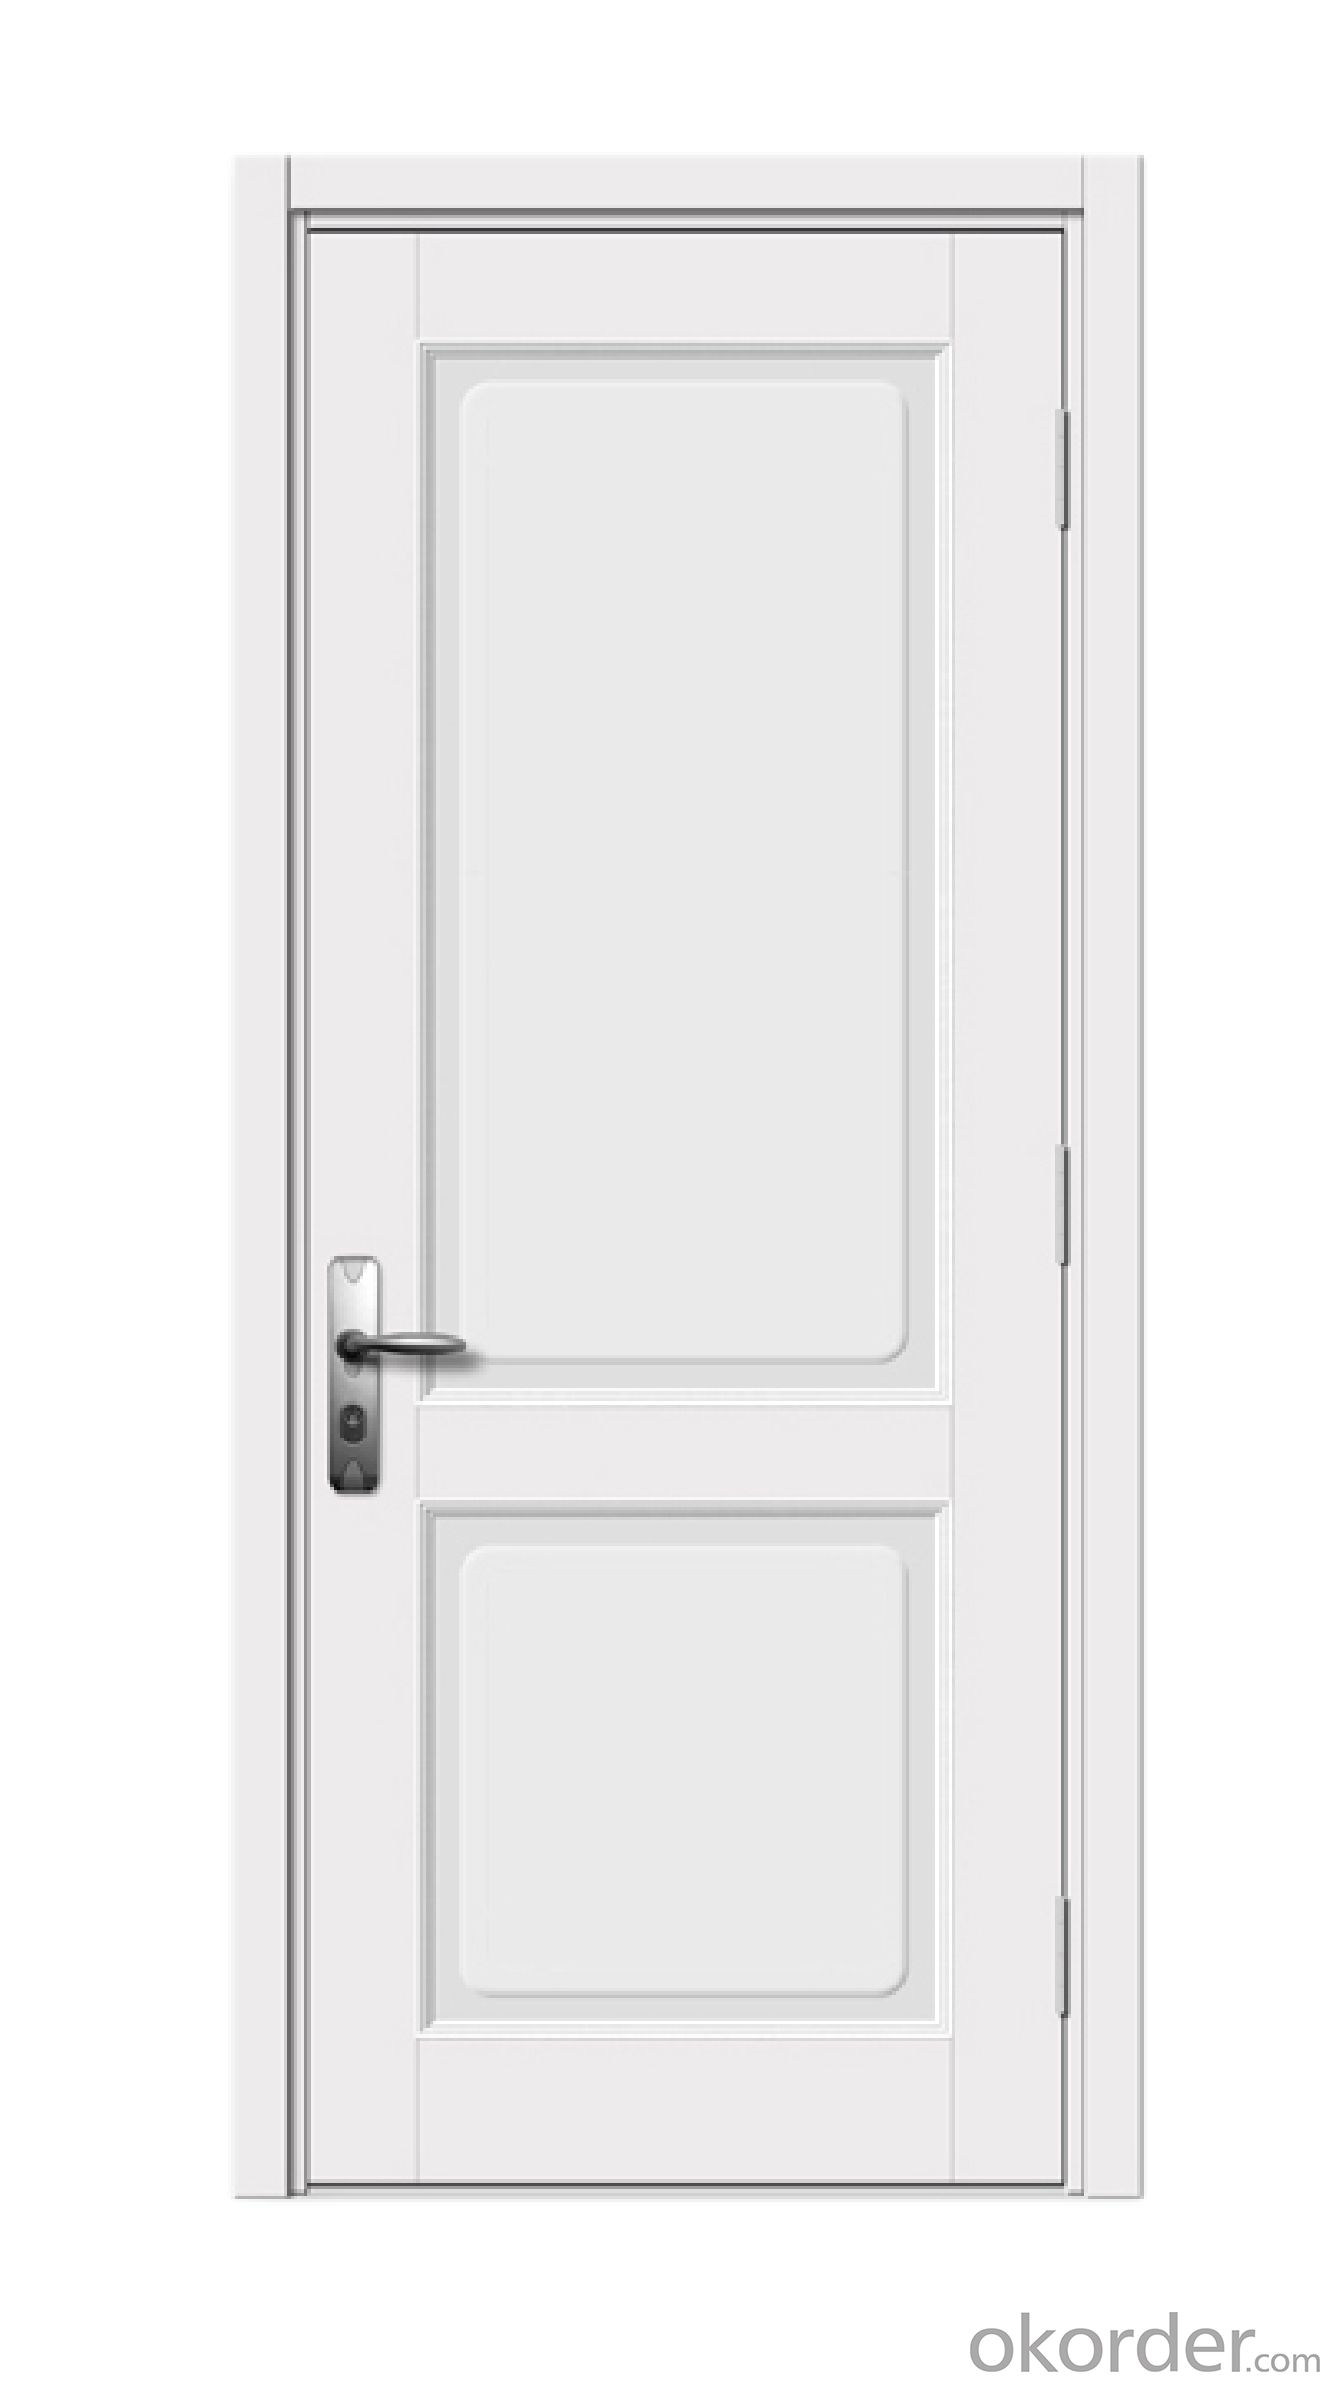 copper door steel security door TX-767